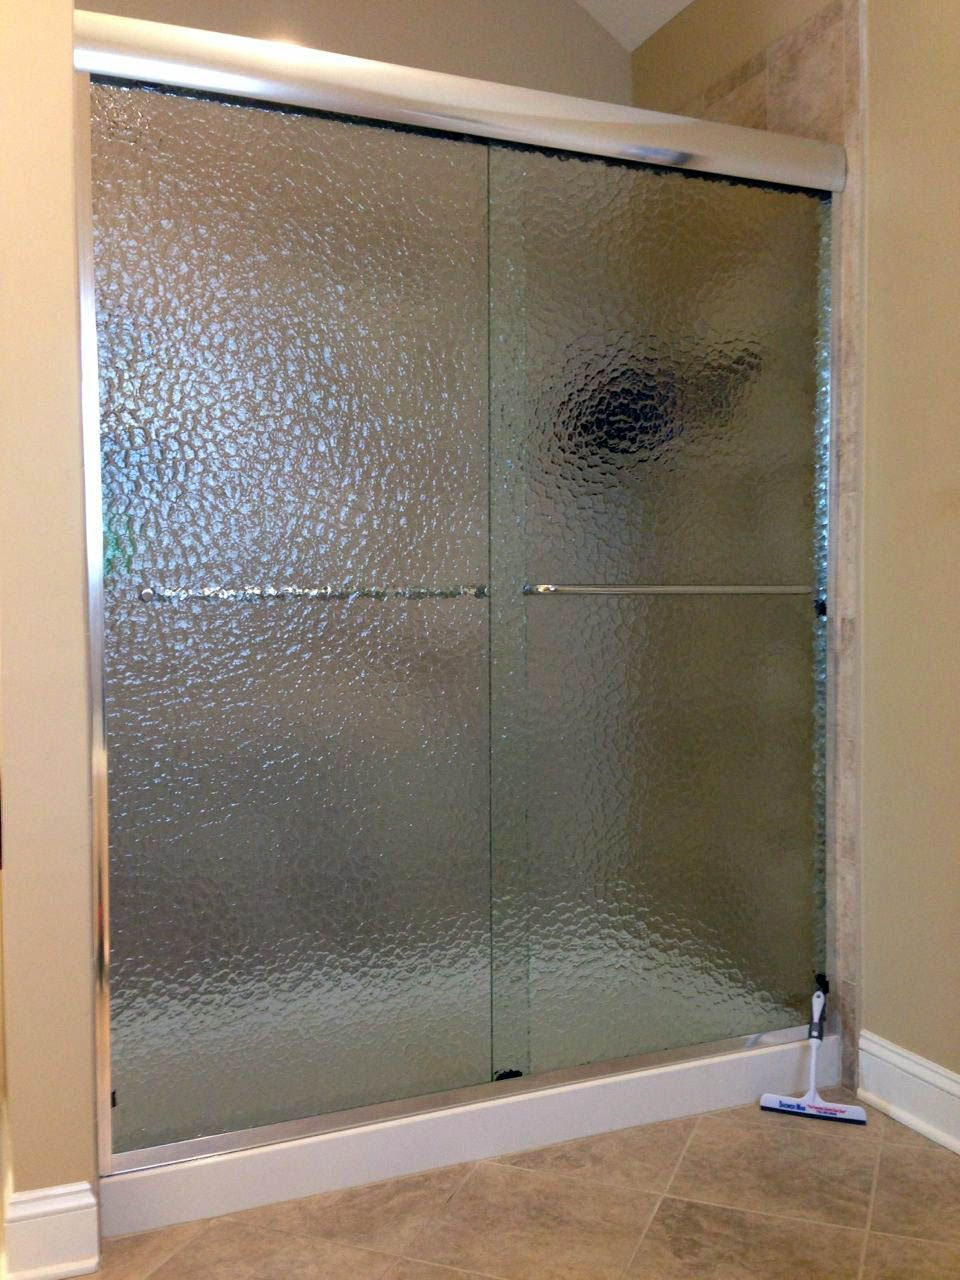 Incredible Glass Shower Doors How To Clean You Ll Love Bano De Cristal Puertas De Ducha Puertas De Bano Aluminio